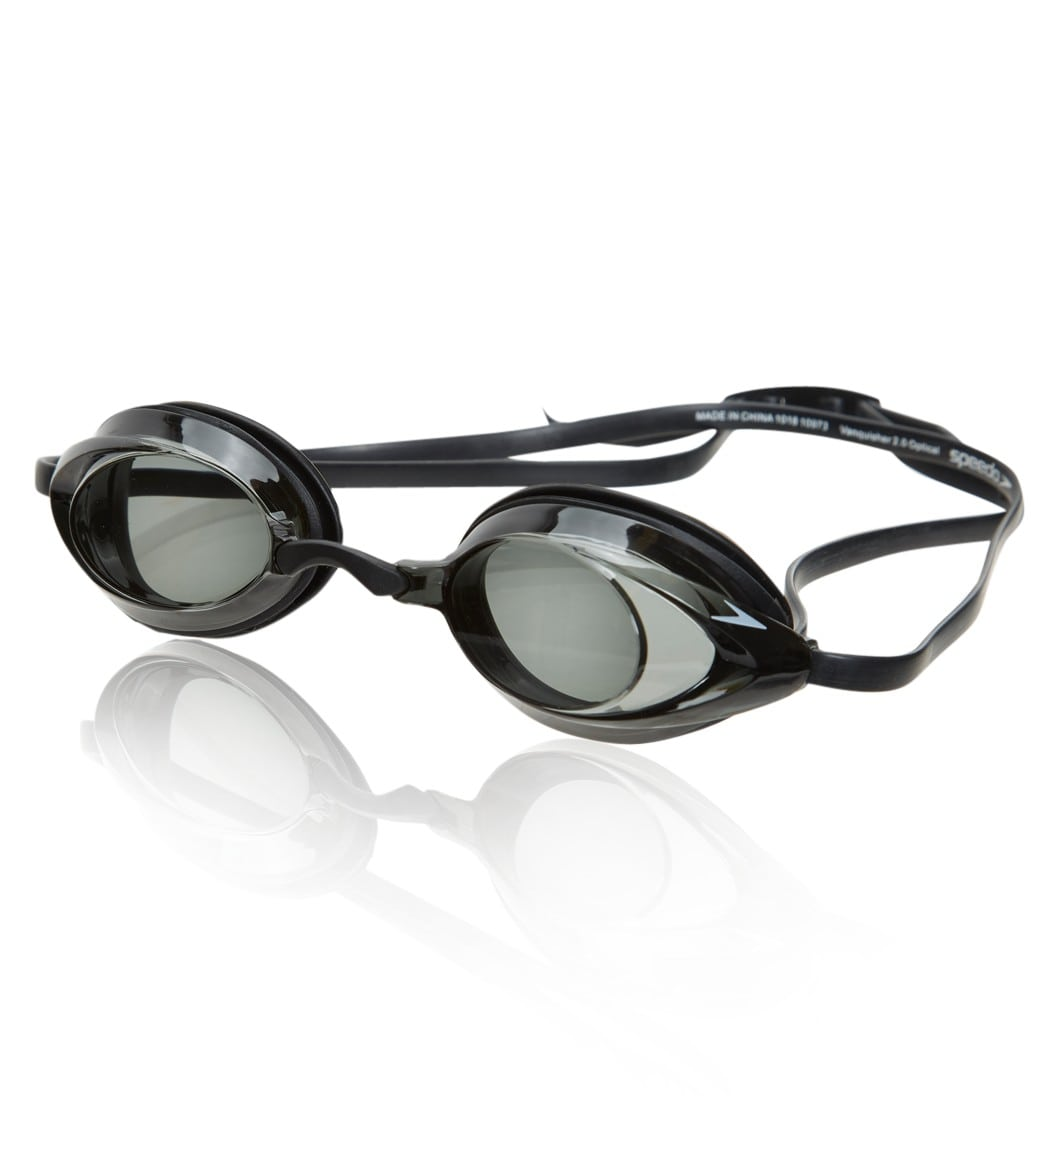 edf7d78a71 Speedo Vanquisher 2.0 Optical Goggle at SwimOutlet.com